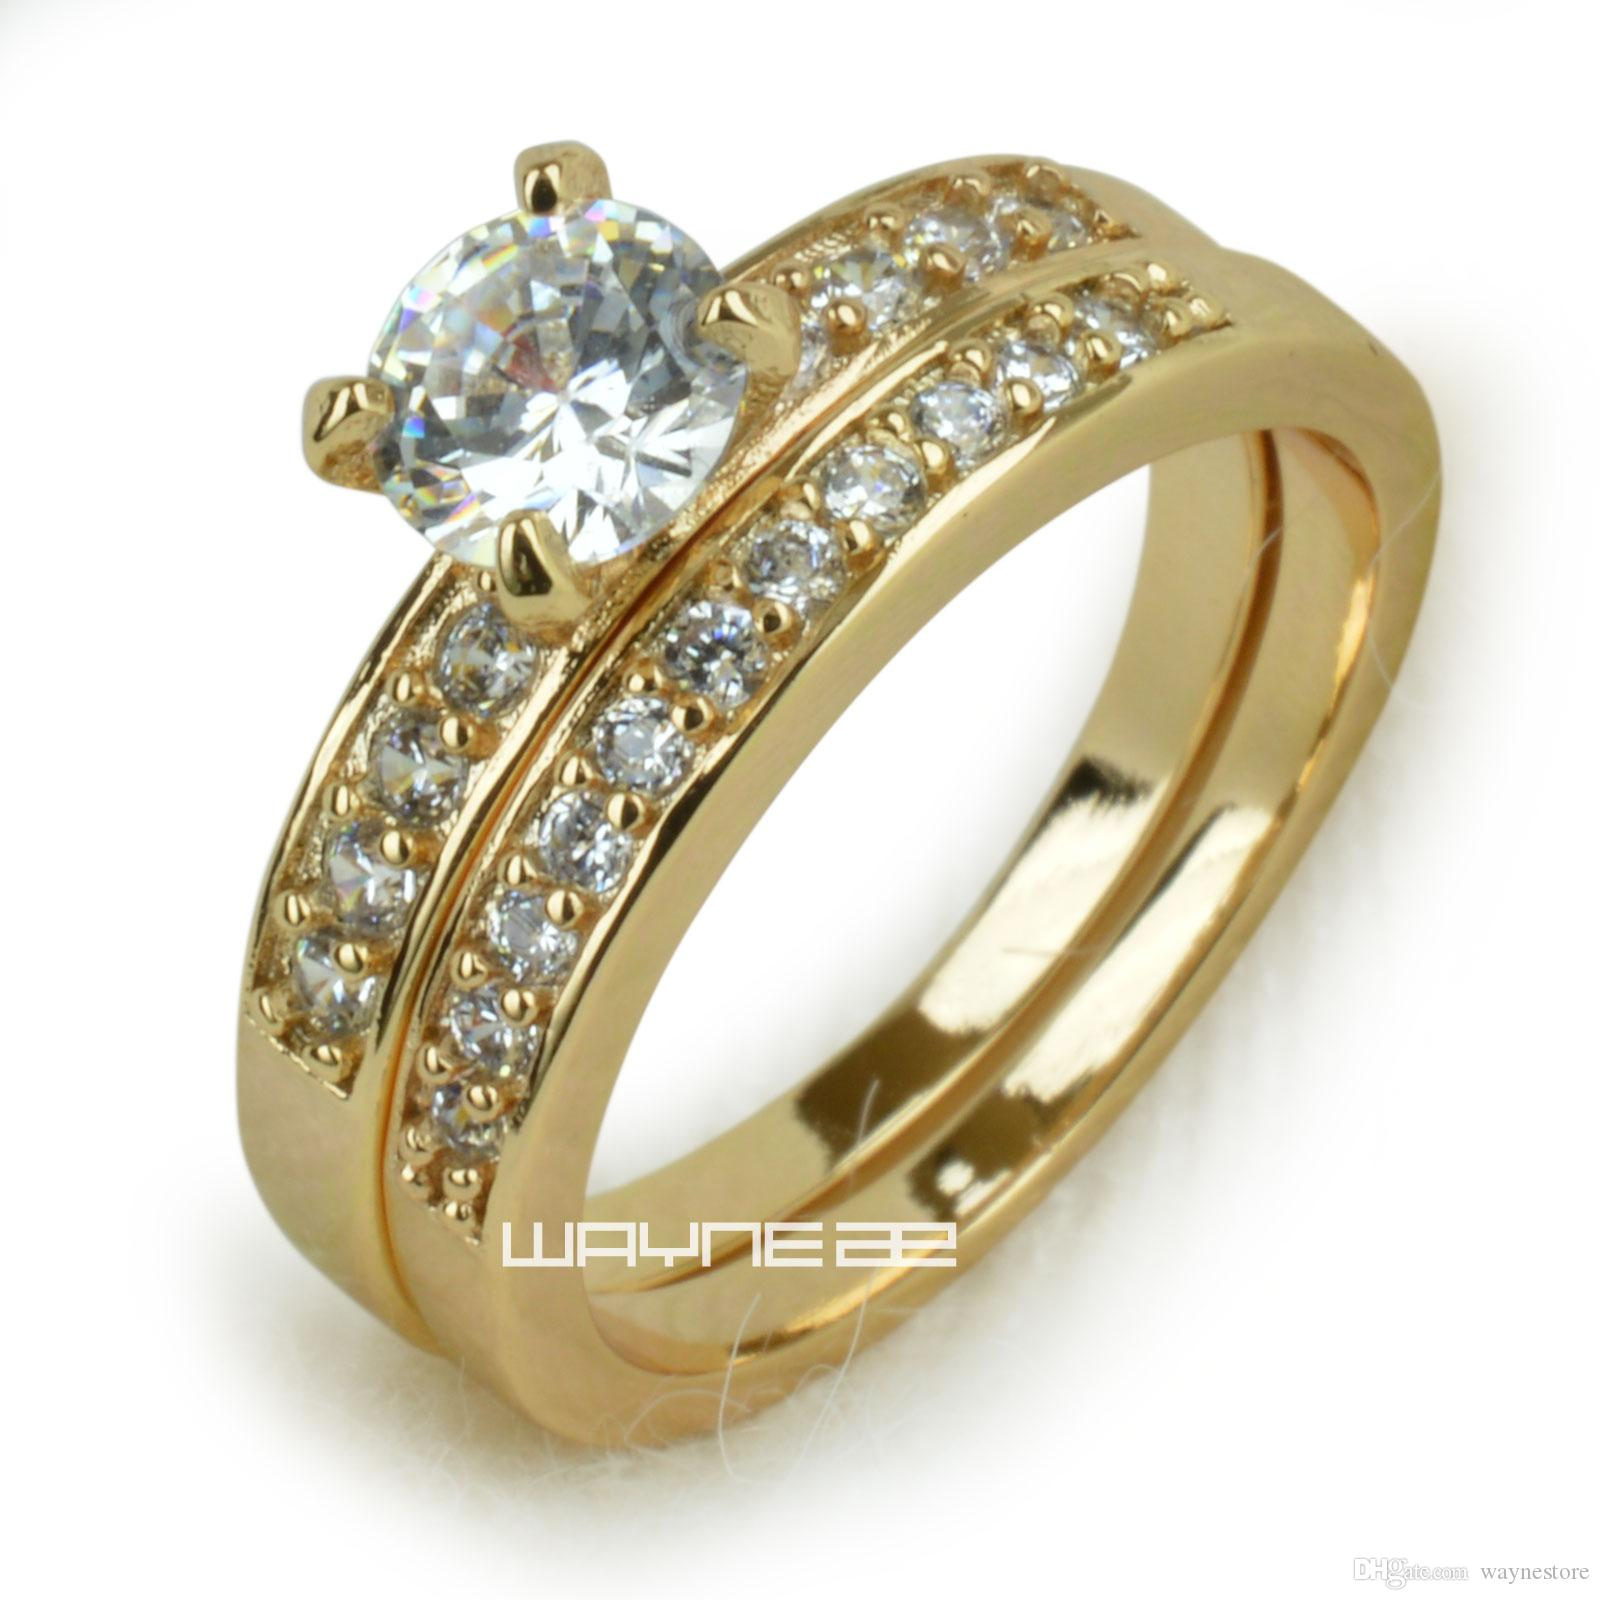 luna rings martha weddings sheffield gold engagement ring yellow vert anna stewart